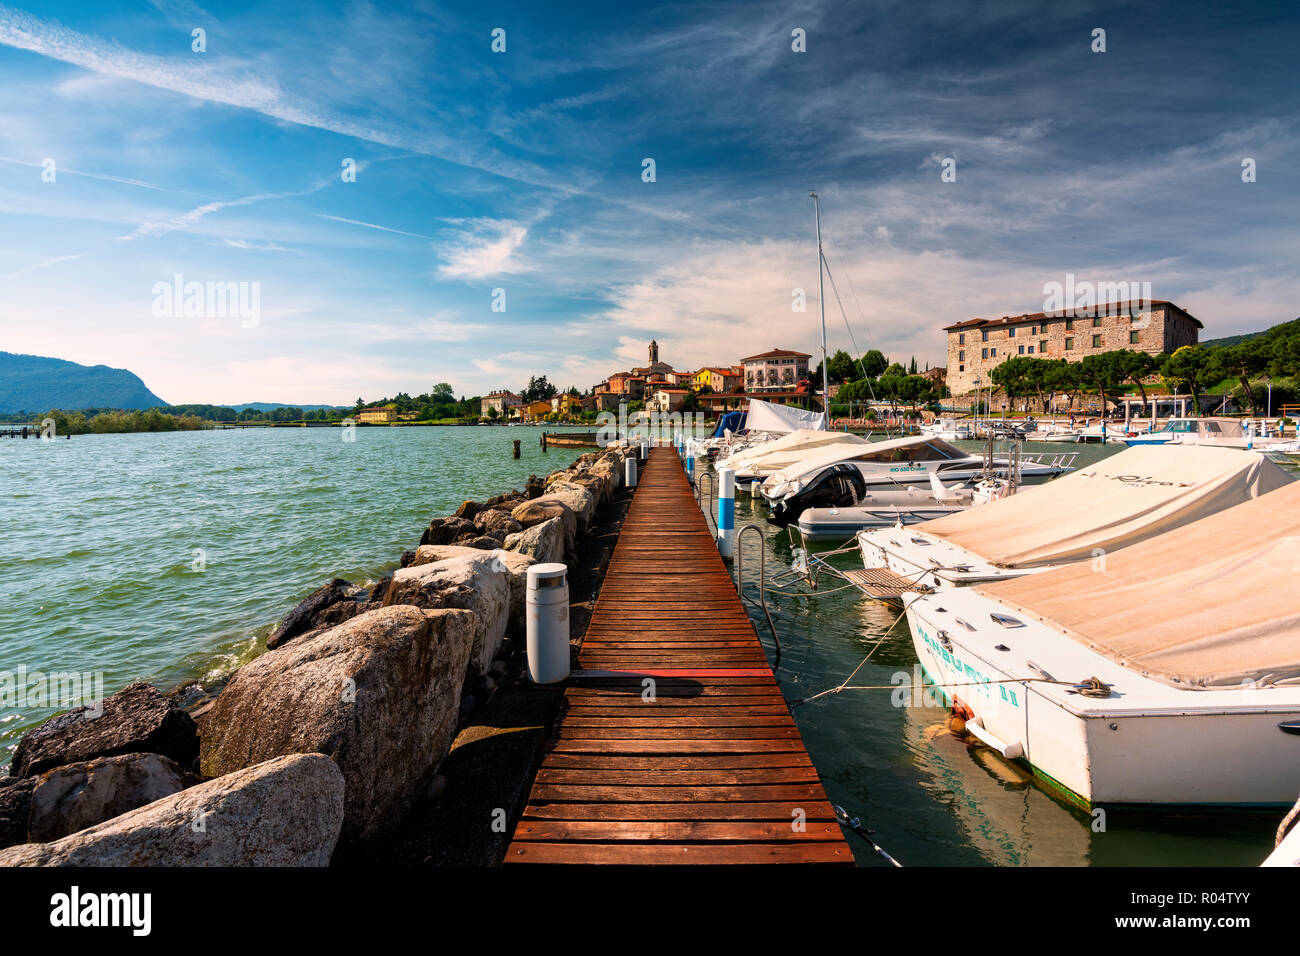 Clusane d'Iseo, Iseo Lake, Brescai province, Lombardy district, Italy, Europe - Stock Image